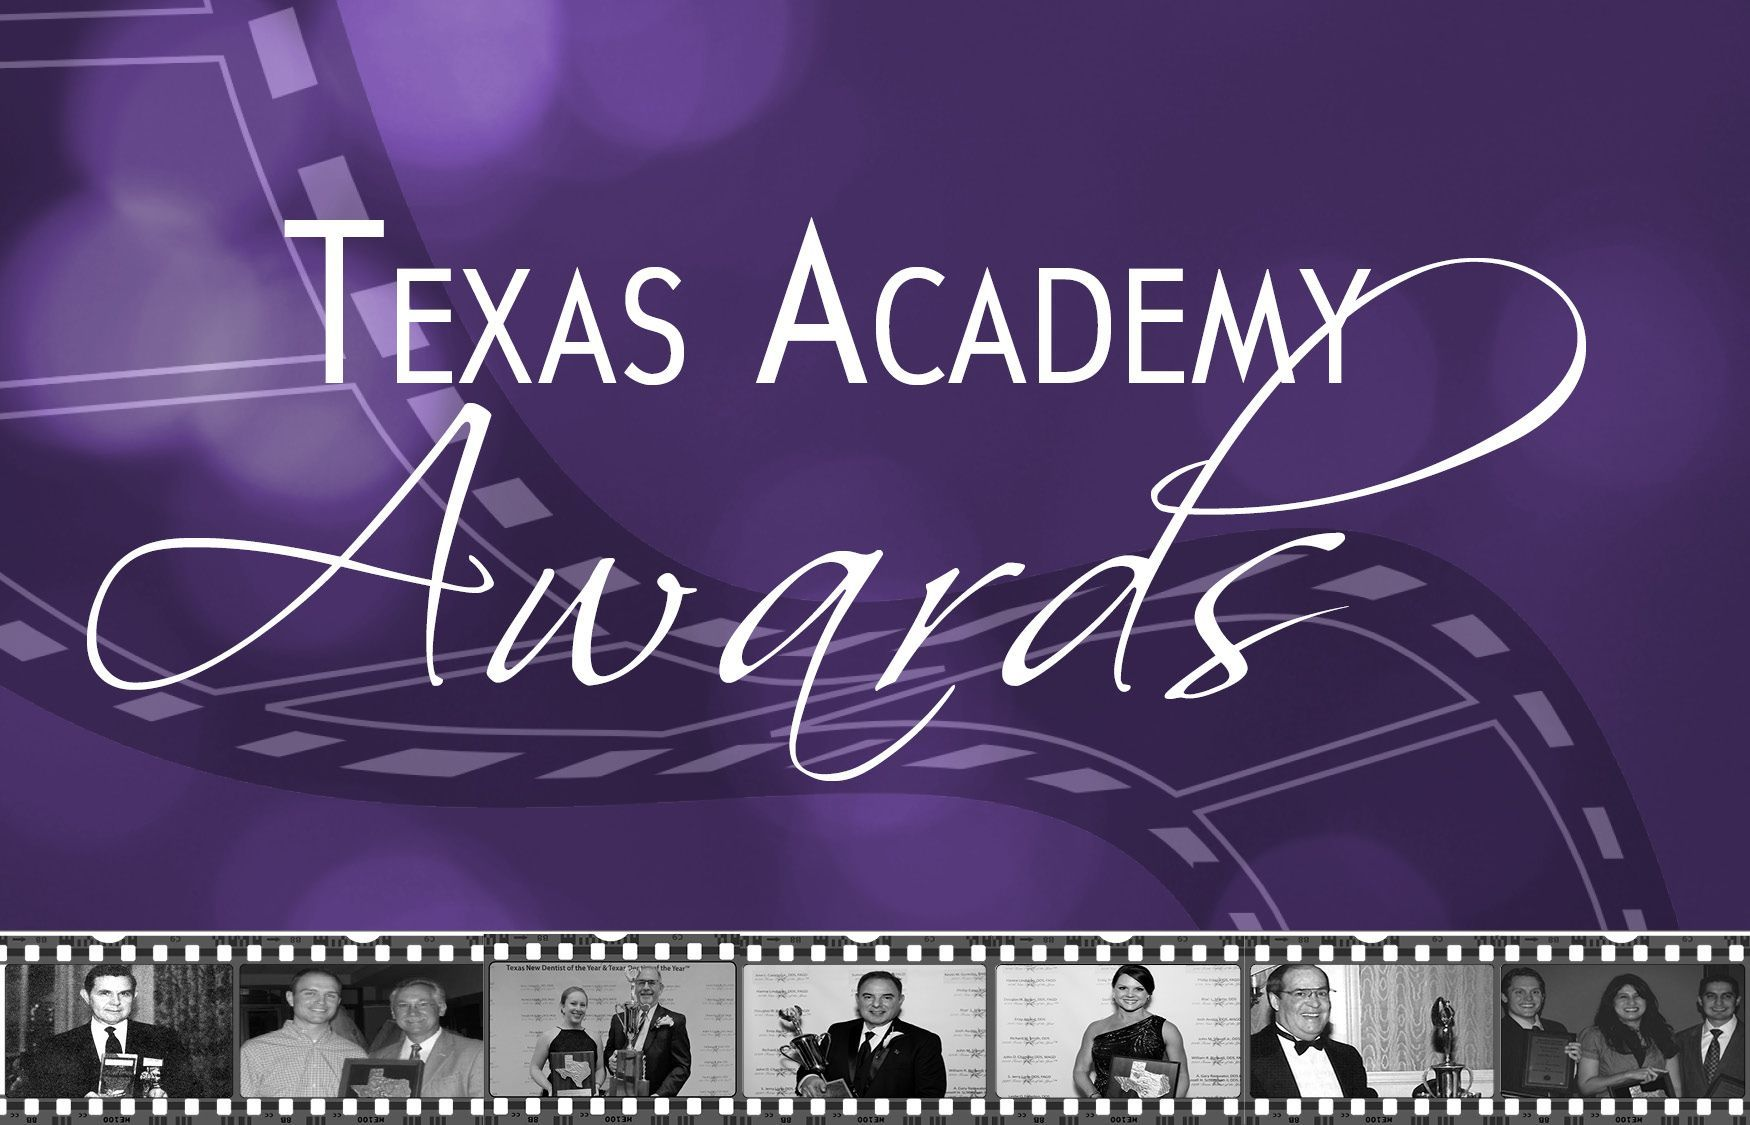 Texas Academy Awards